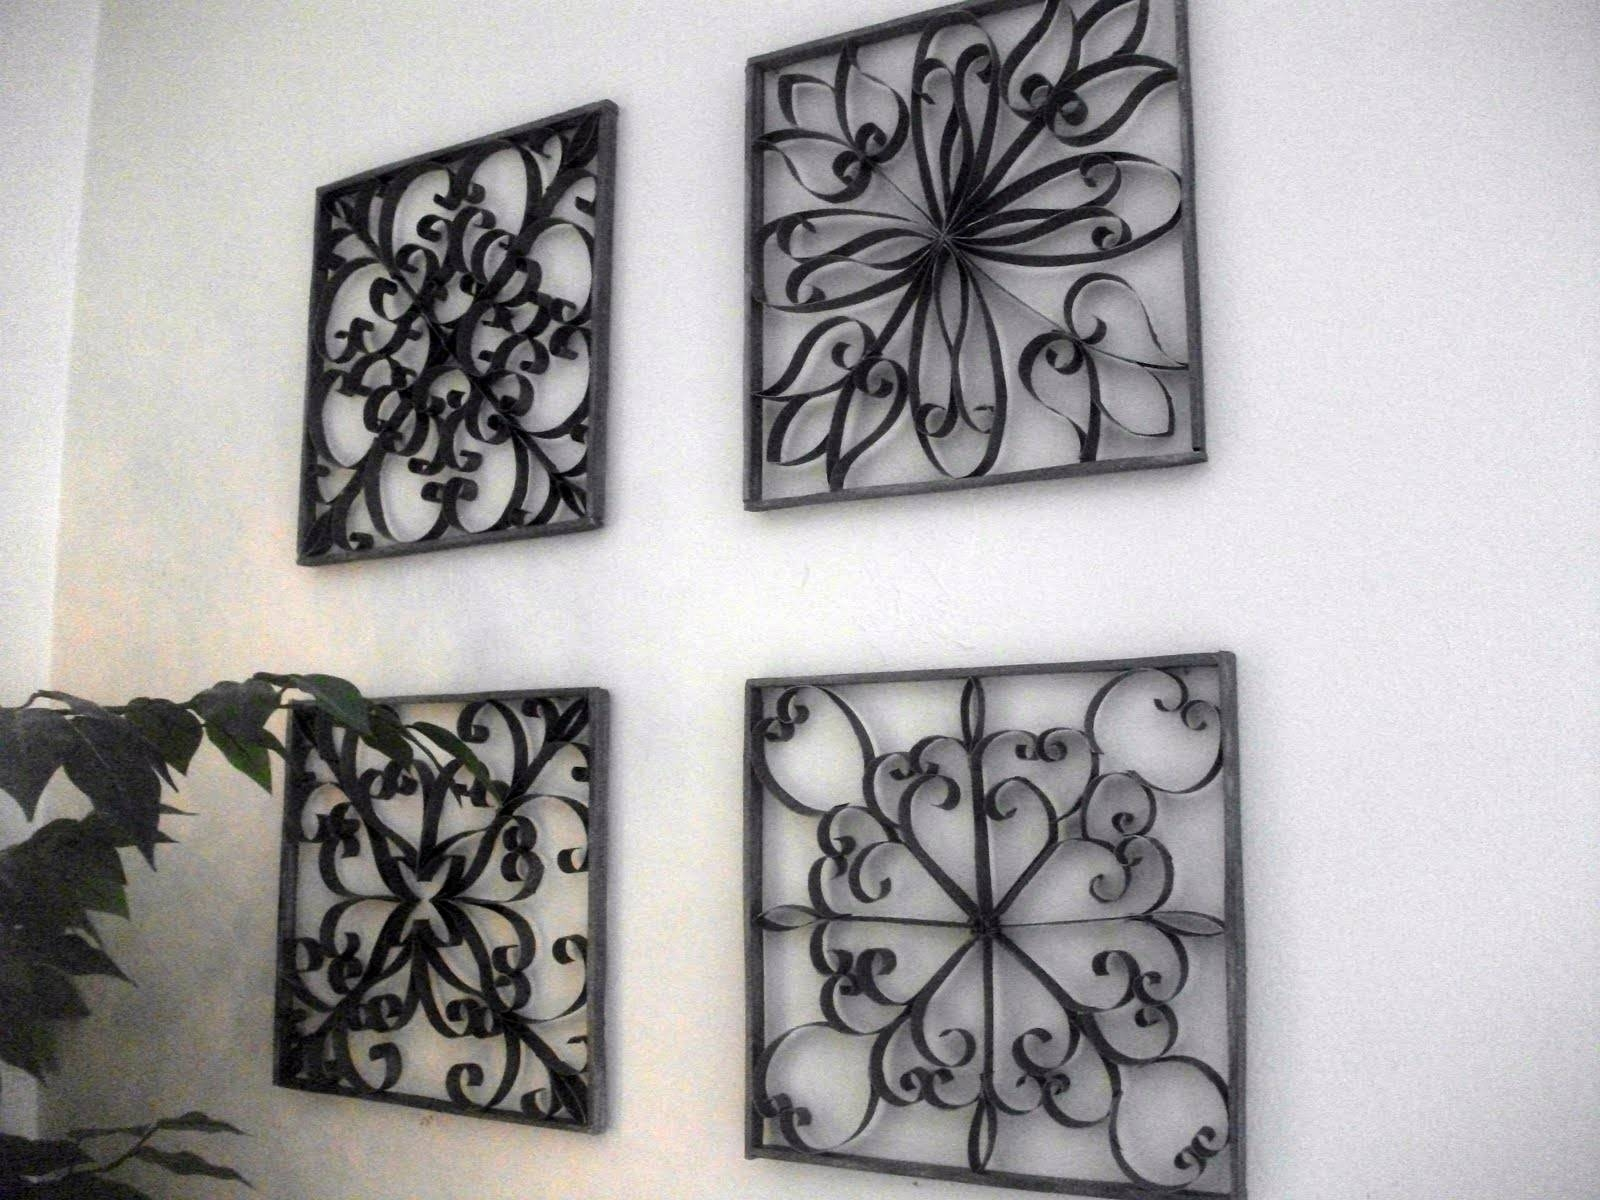 Faux Wrought Iron Wall Art | Within Most Recent Faux Wrought Iron Wall Art (View 3 of 30)